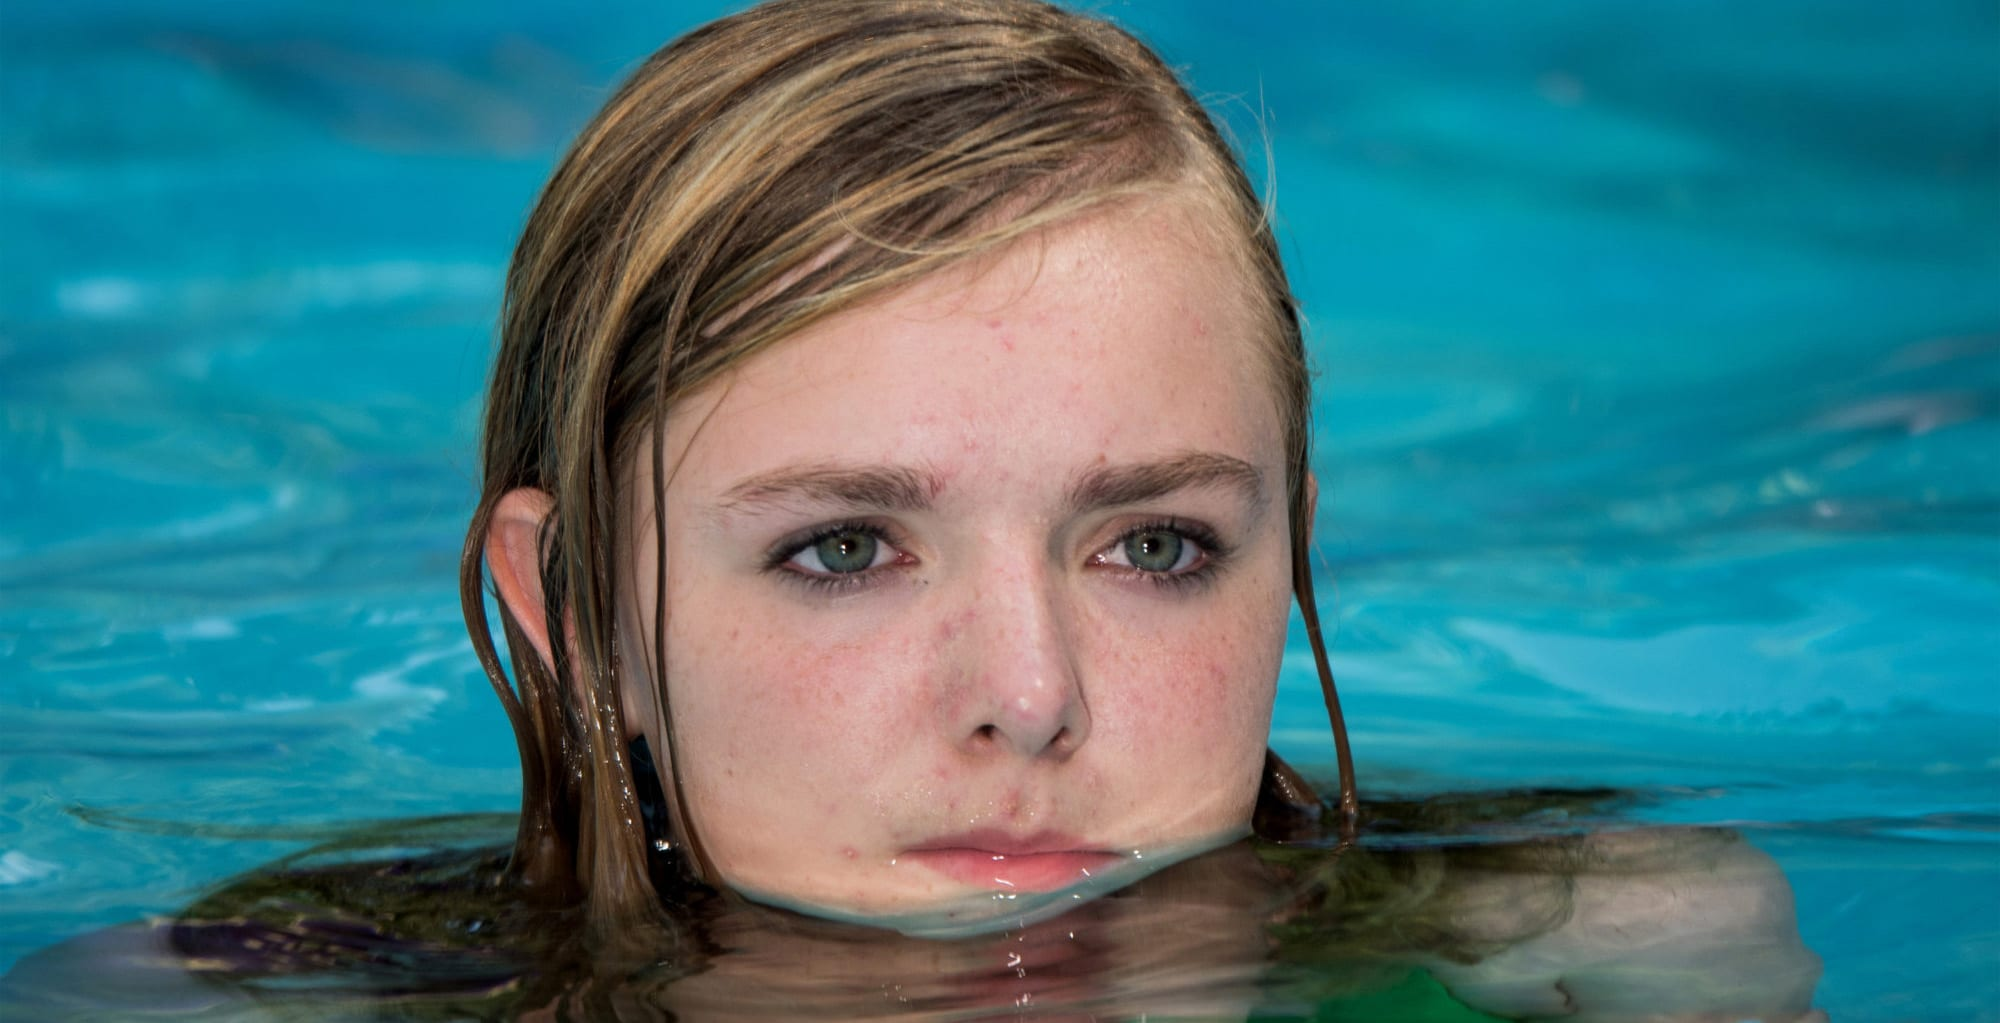 Bo Burnham's coming-of-age dramedy 'Eighth Grade' follows an eighth-grader – played by Elsie Fisher (McFarland) – who endures the tidal wave of contemporary suburban adolescence and thus struggles to finish her last week of classes before heading to high school.